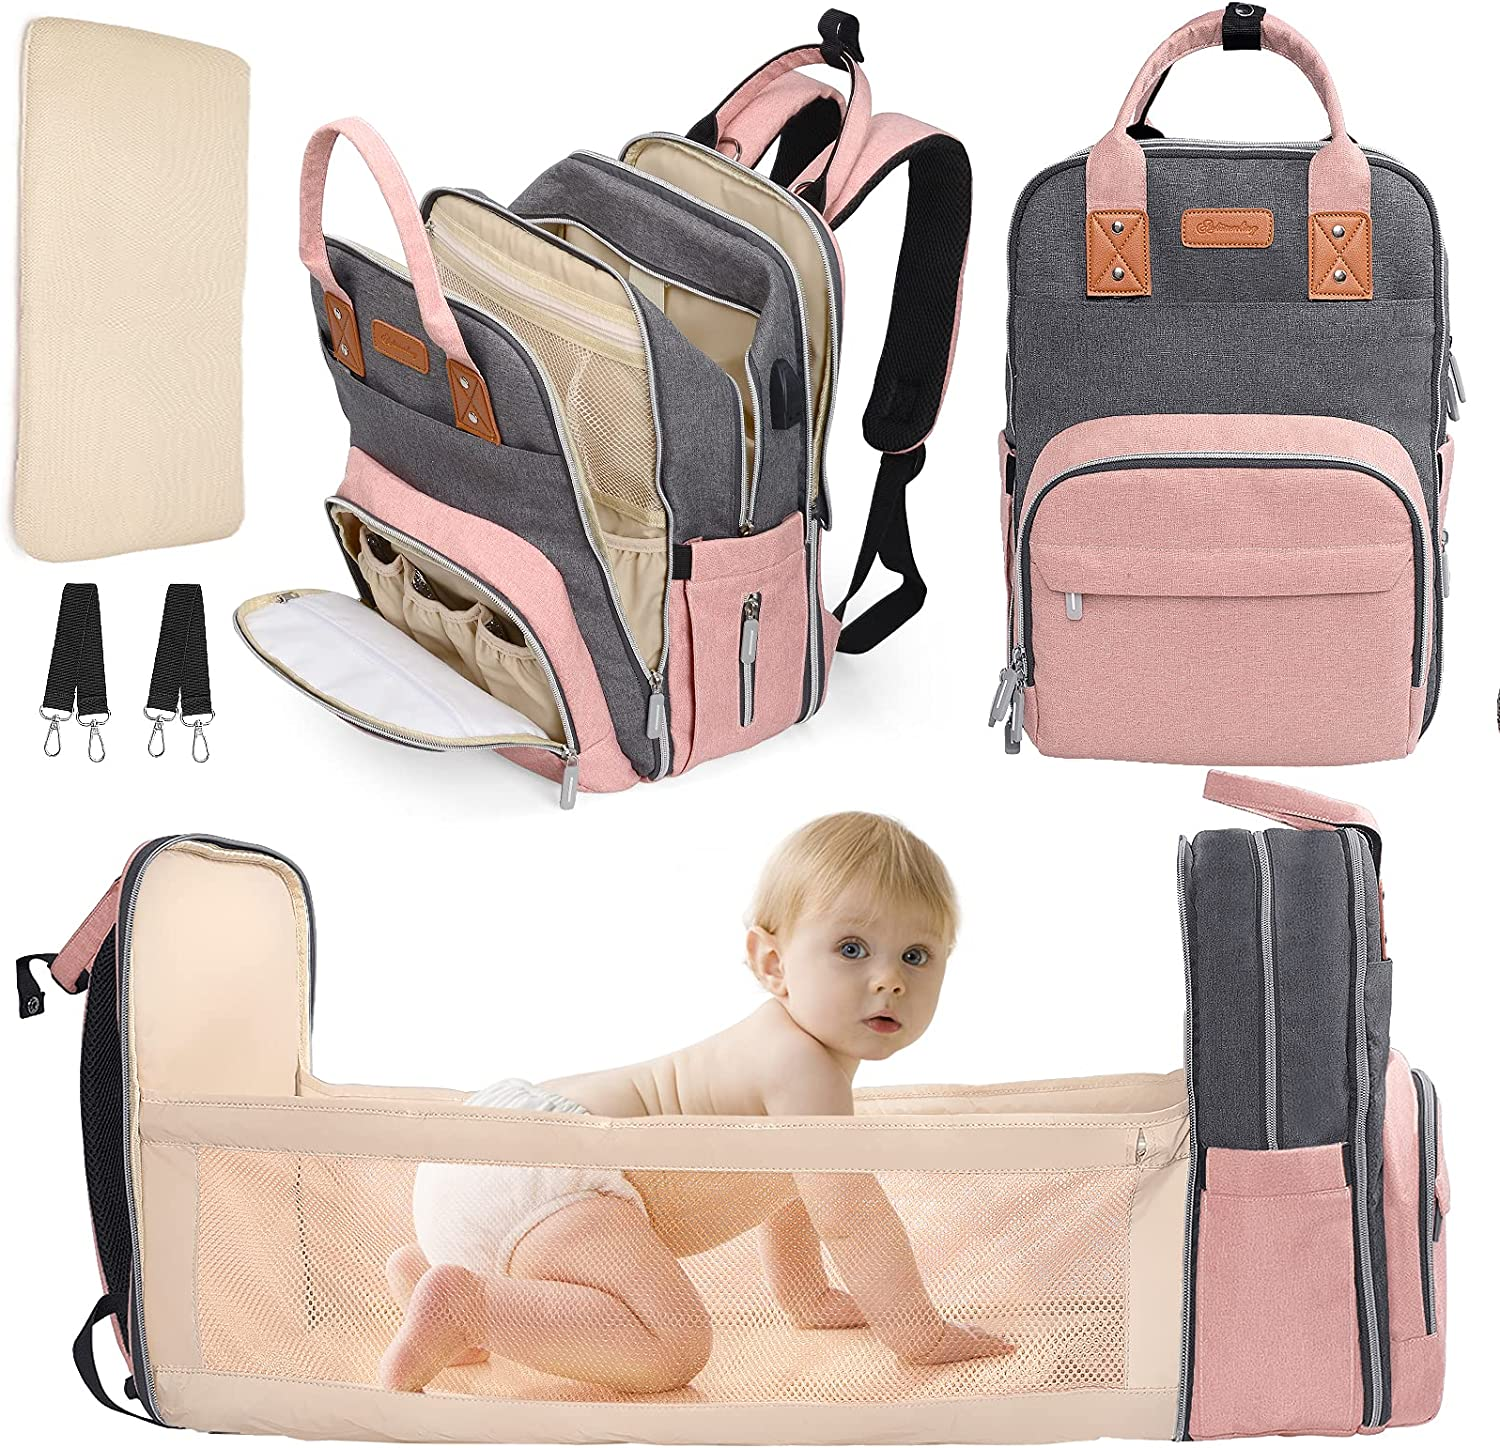 Large Baby Diaper Bag Backpack with Changing Station - new born baby girls gift - Baby Shower Gifts registry for Boy&Girls - baby Essentials&Stuff&Accessories for Girls Boys Men Dad Mom